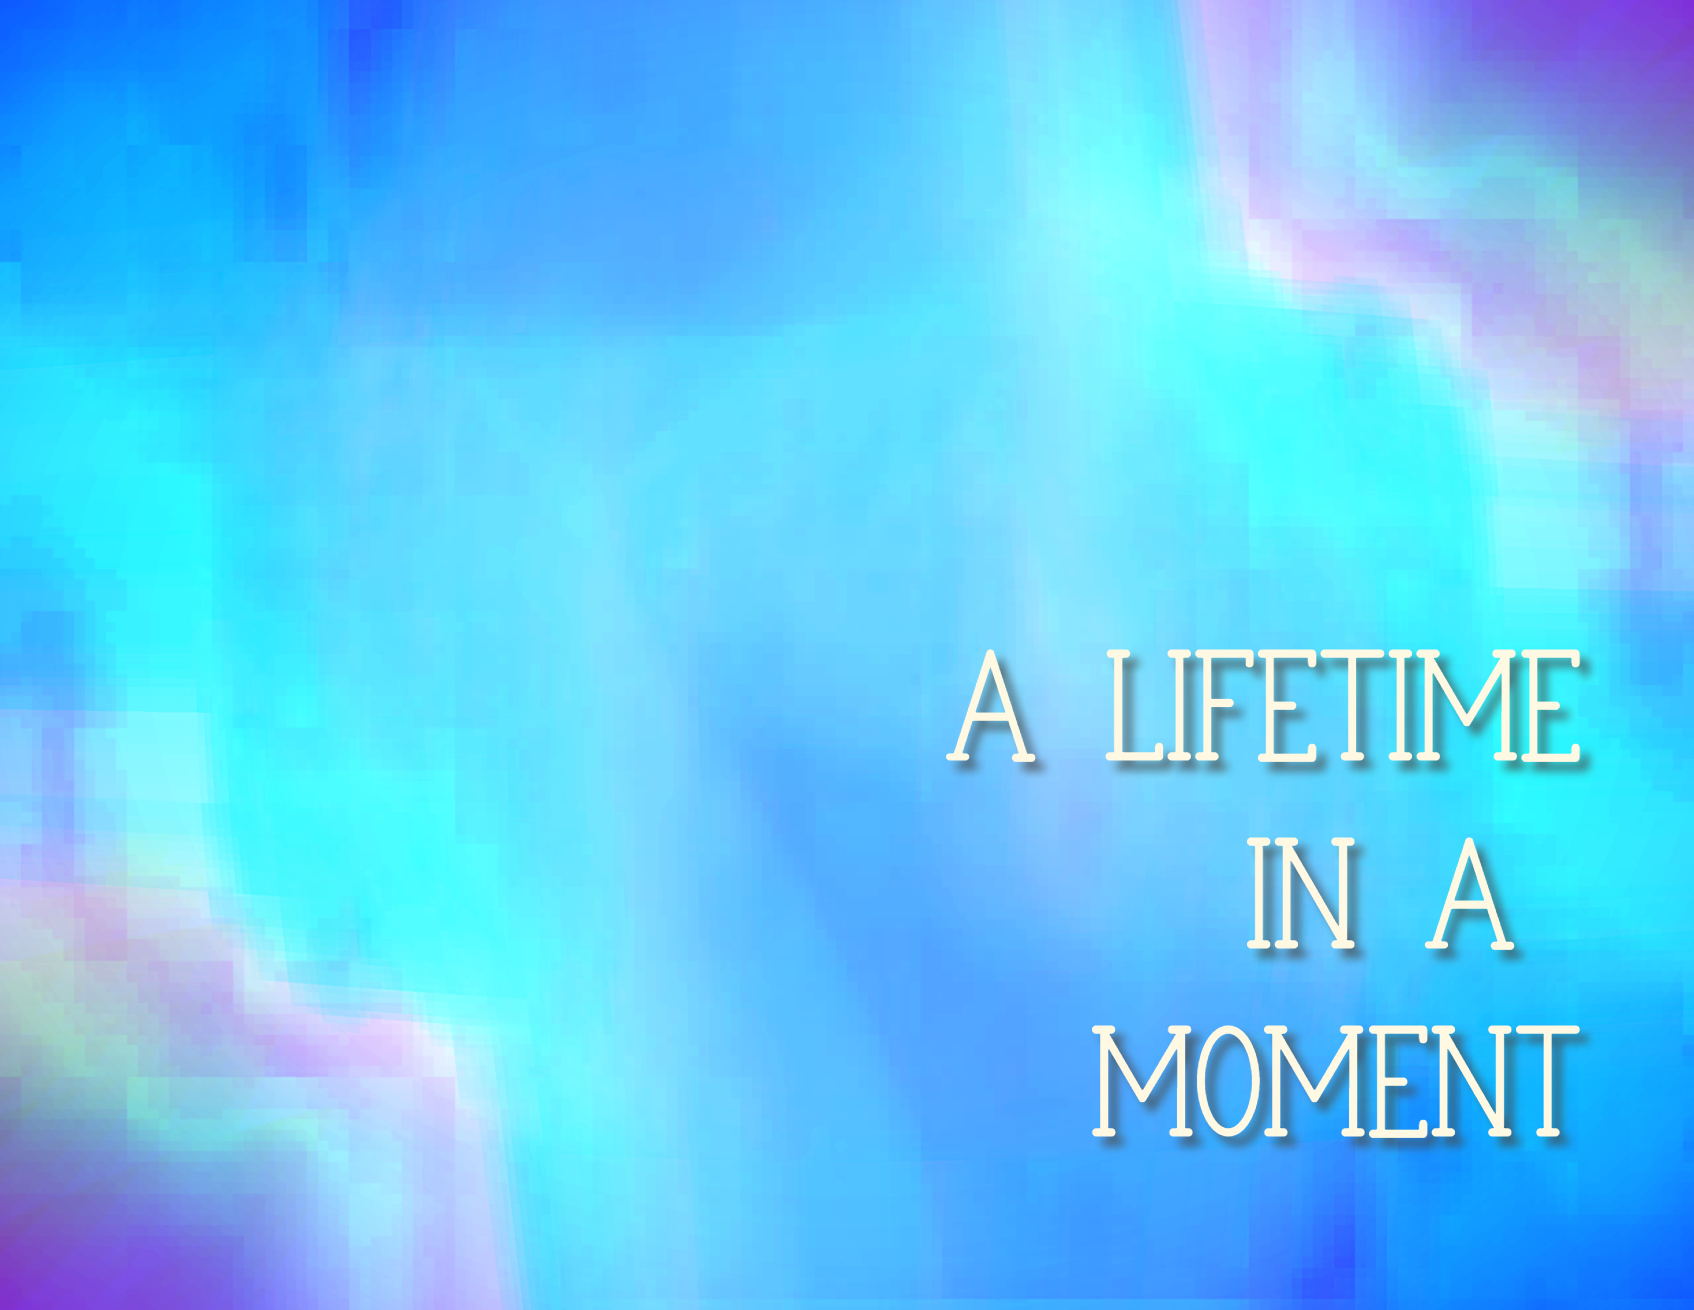 A Lifetime in a Moment